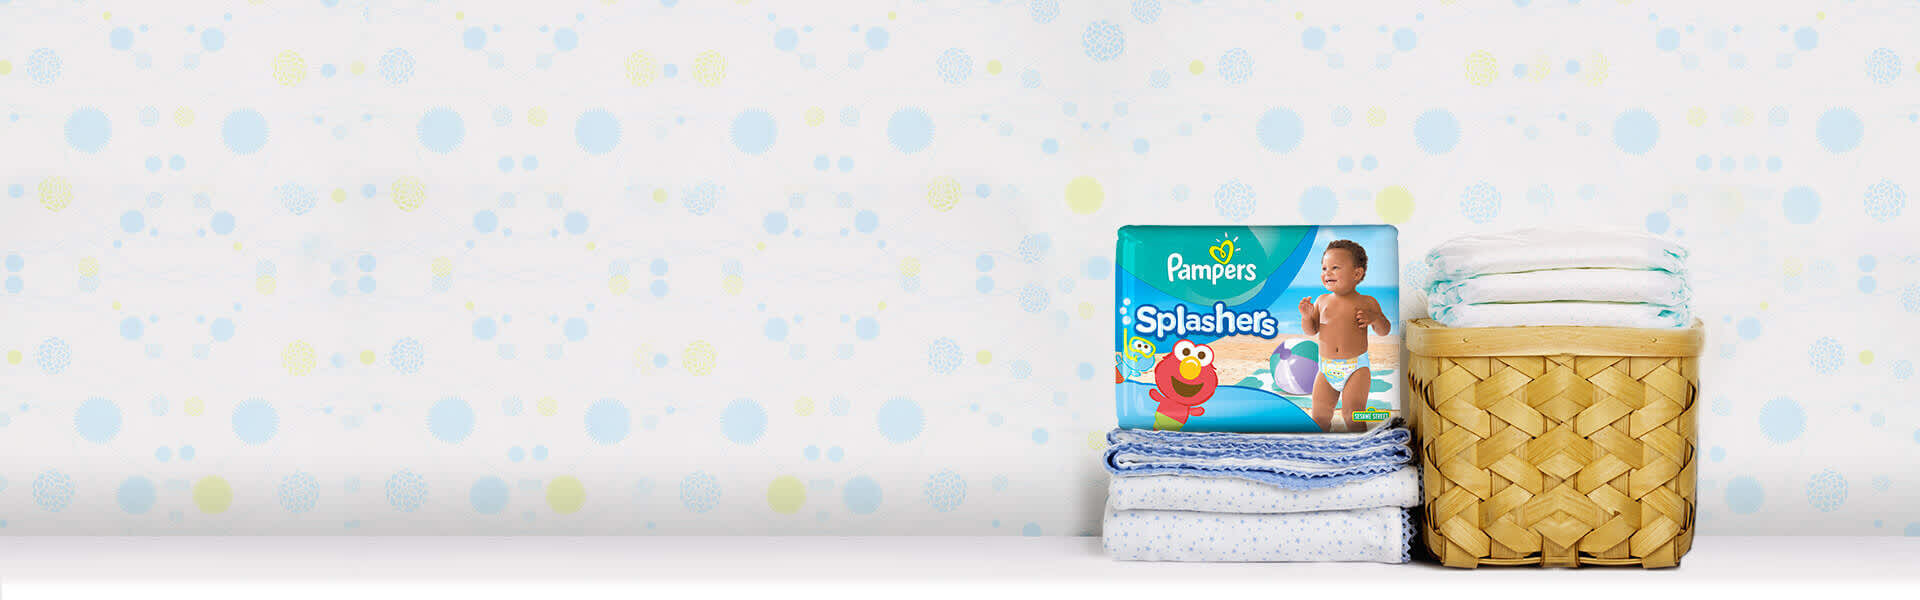 Pampers Splashers| Pampers South Africa